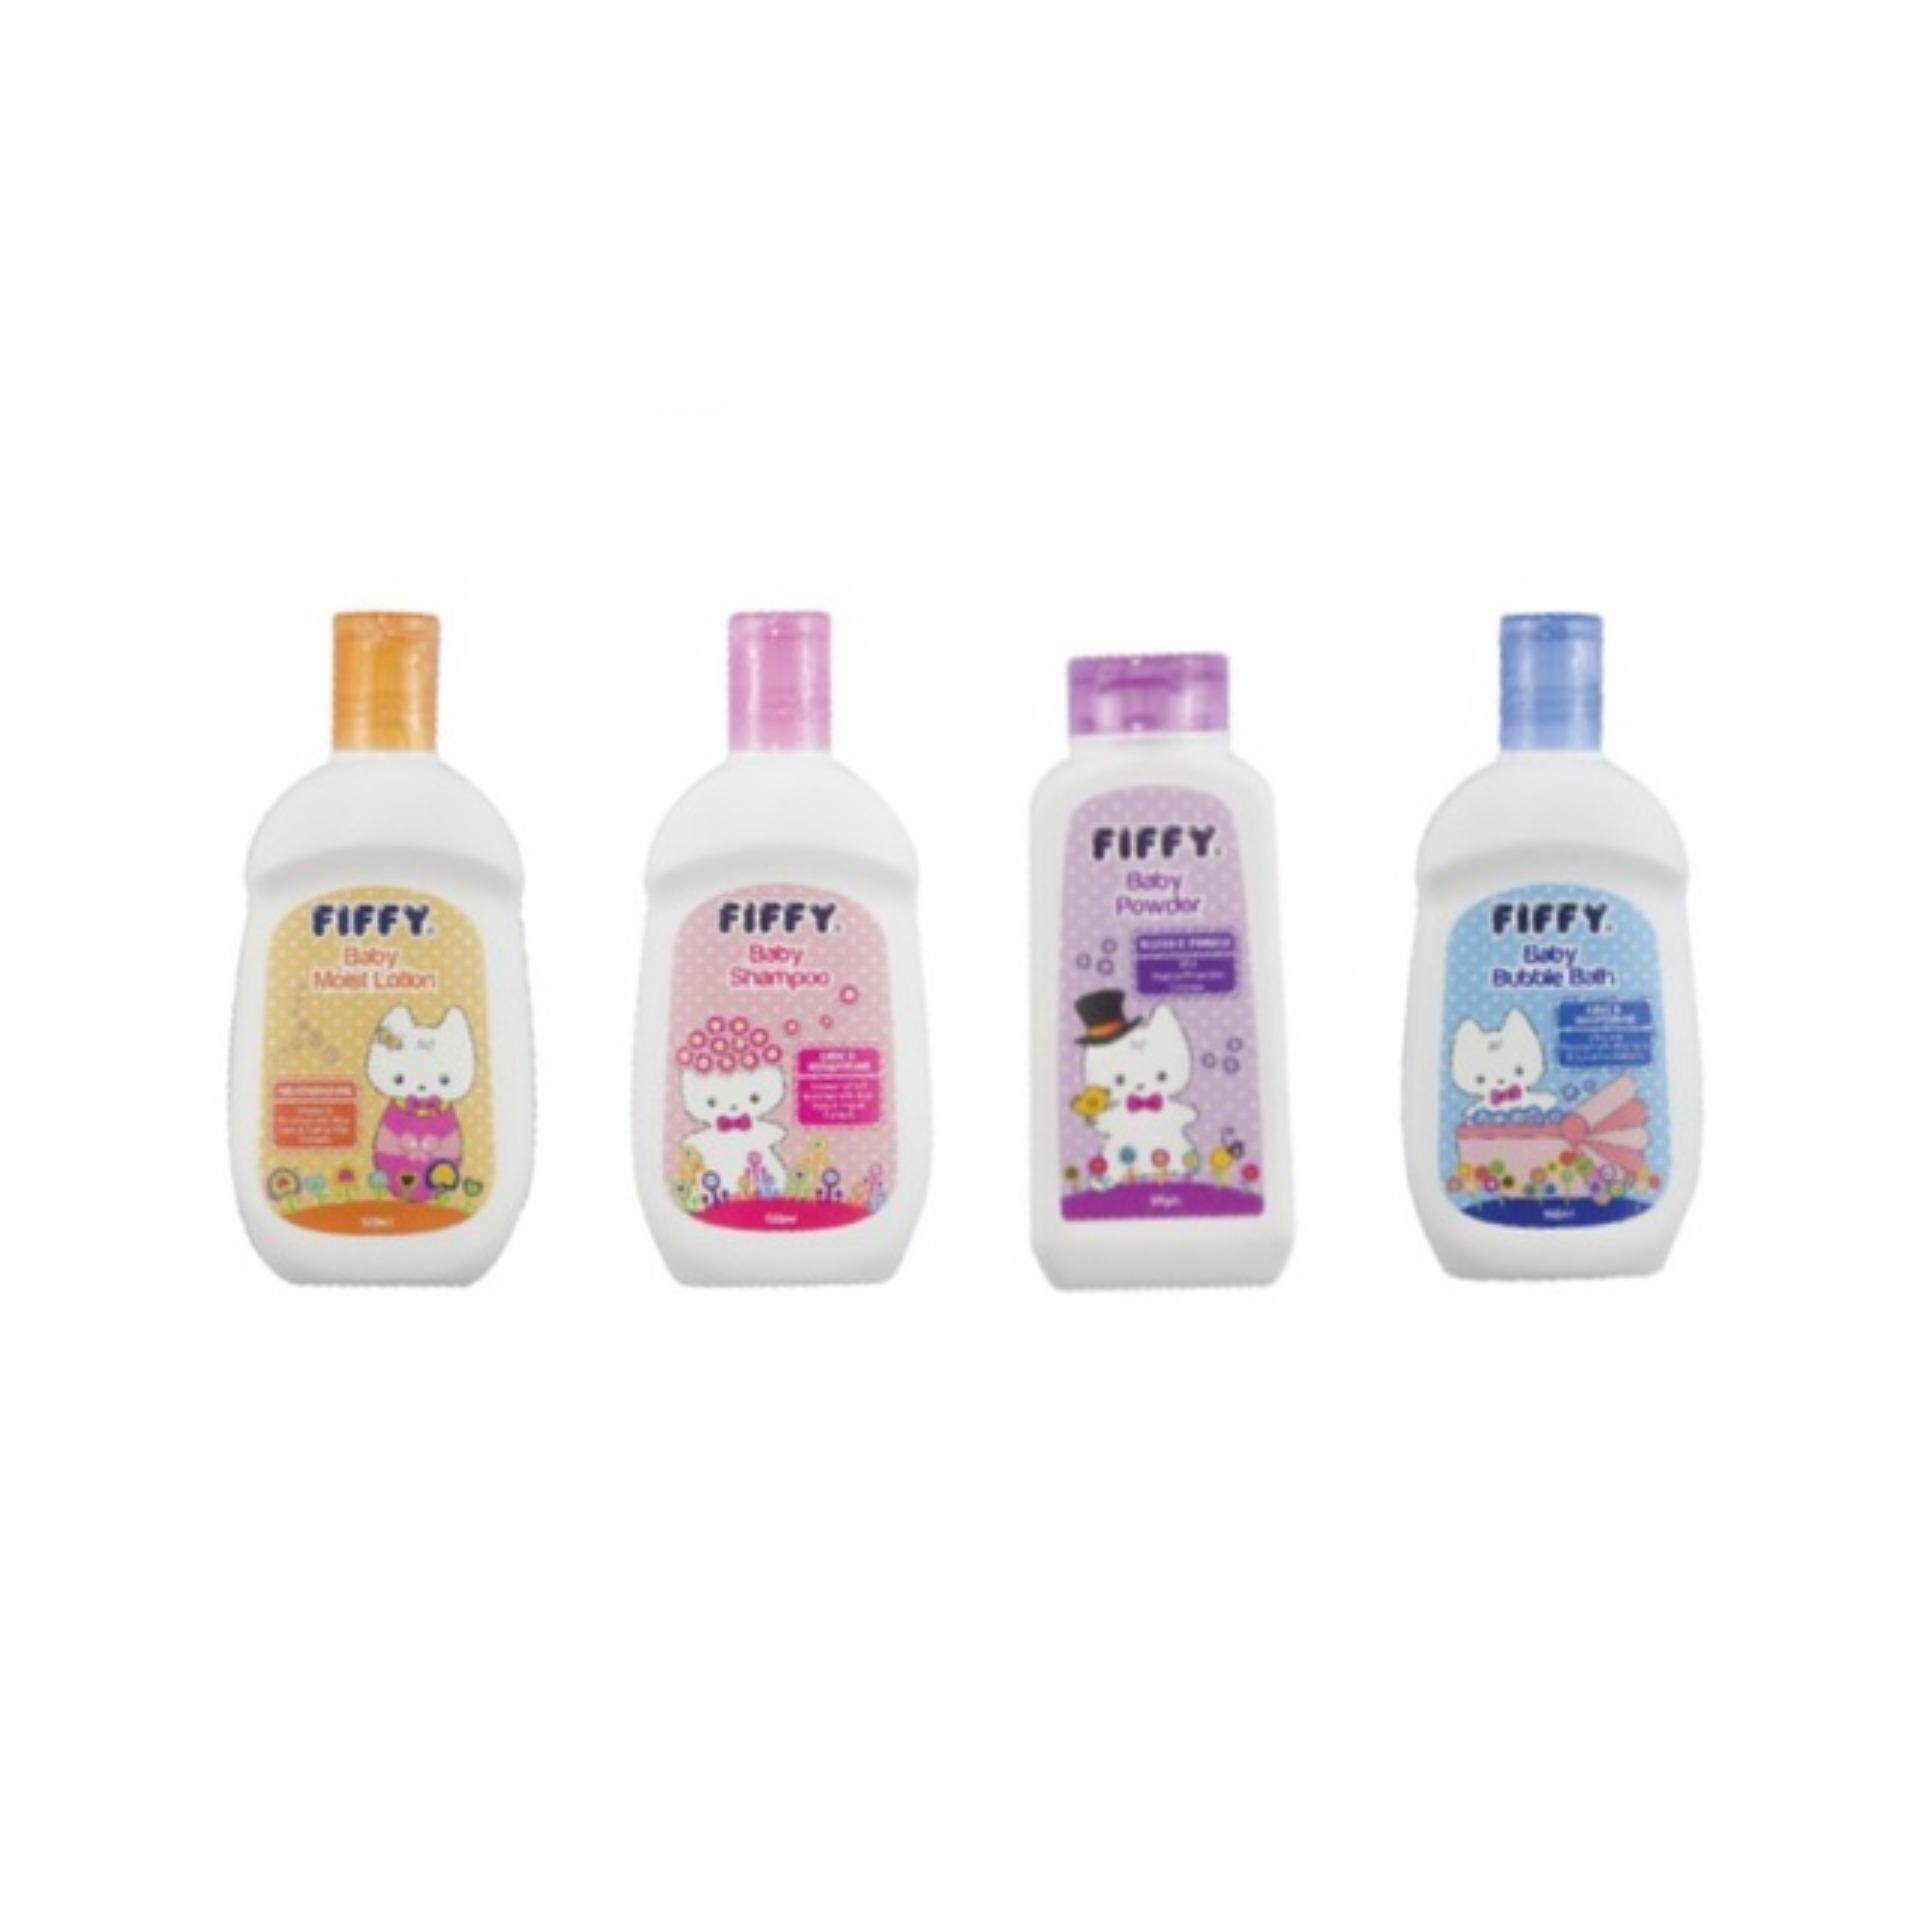 Fiffy Toiletries Gift Set (4 Bottles) By Fiffy Online.